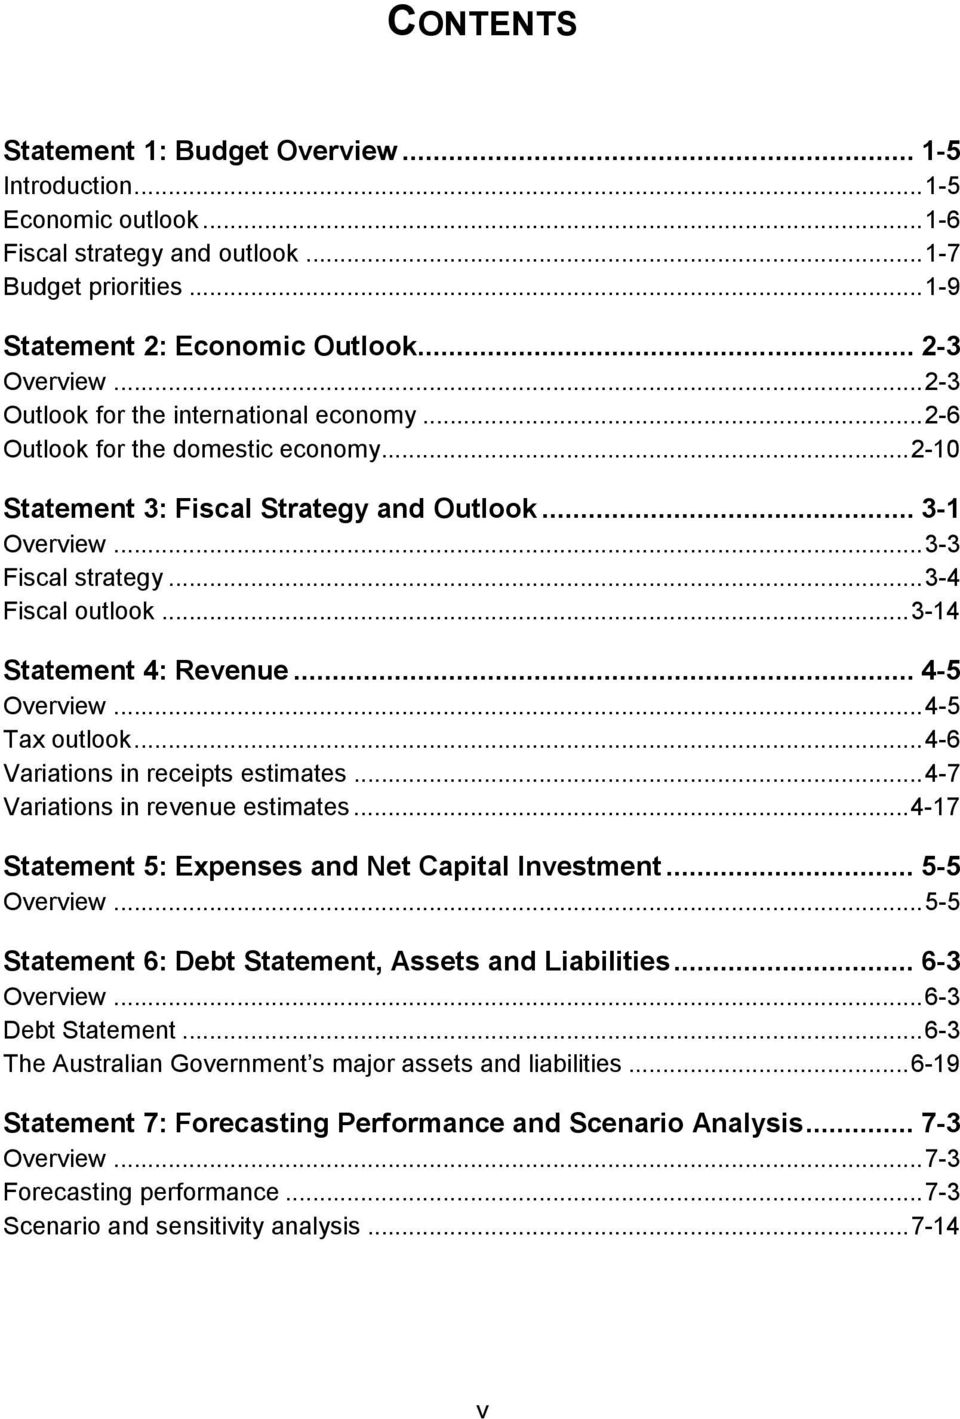 .. 3-14 Statement 4: Revenue... 4-5 Overview... 4-5 Tax outlook... 4-6 Variations in receipts estimates... 4-7 Variations in revenue estimates... 4-17 Statement 5: Expenses and Net Capital Investment.